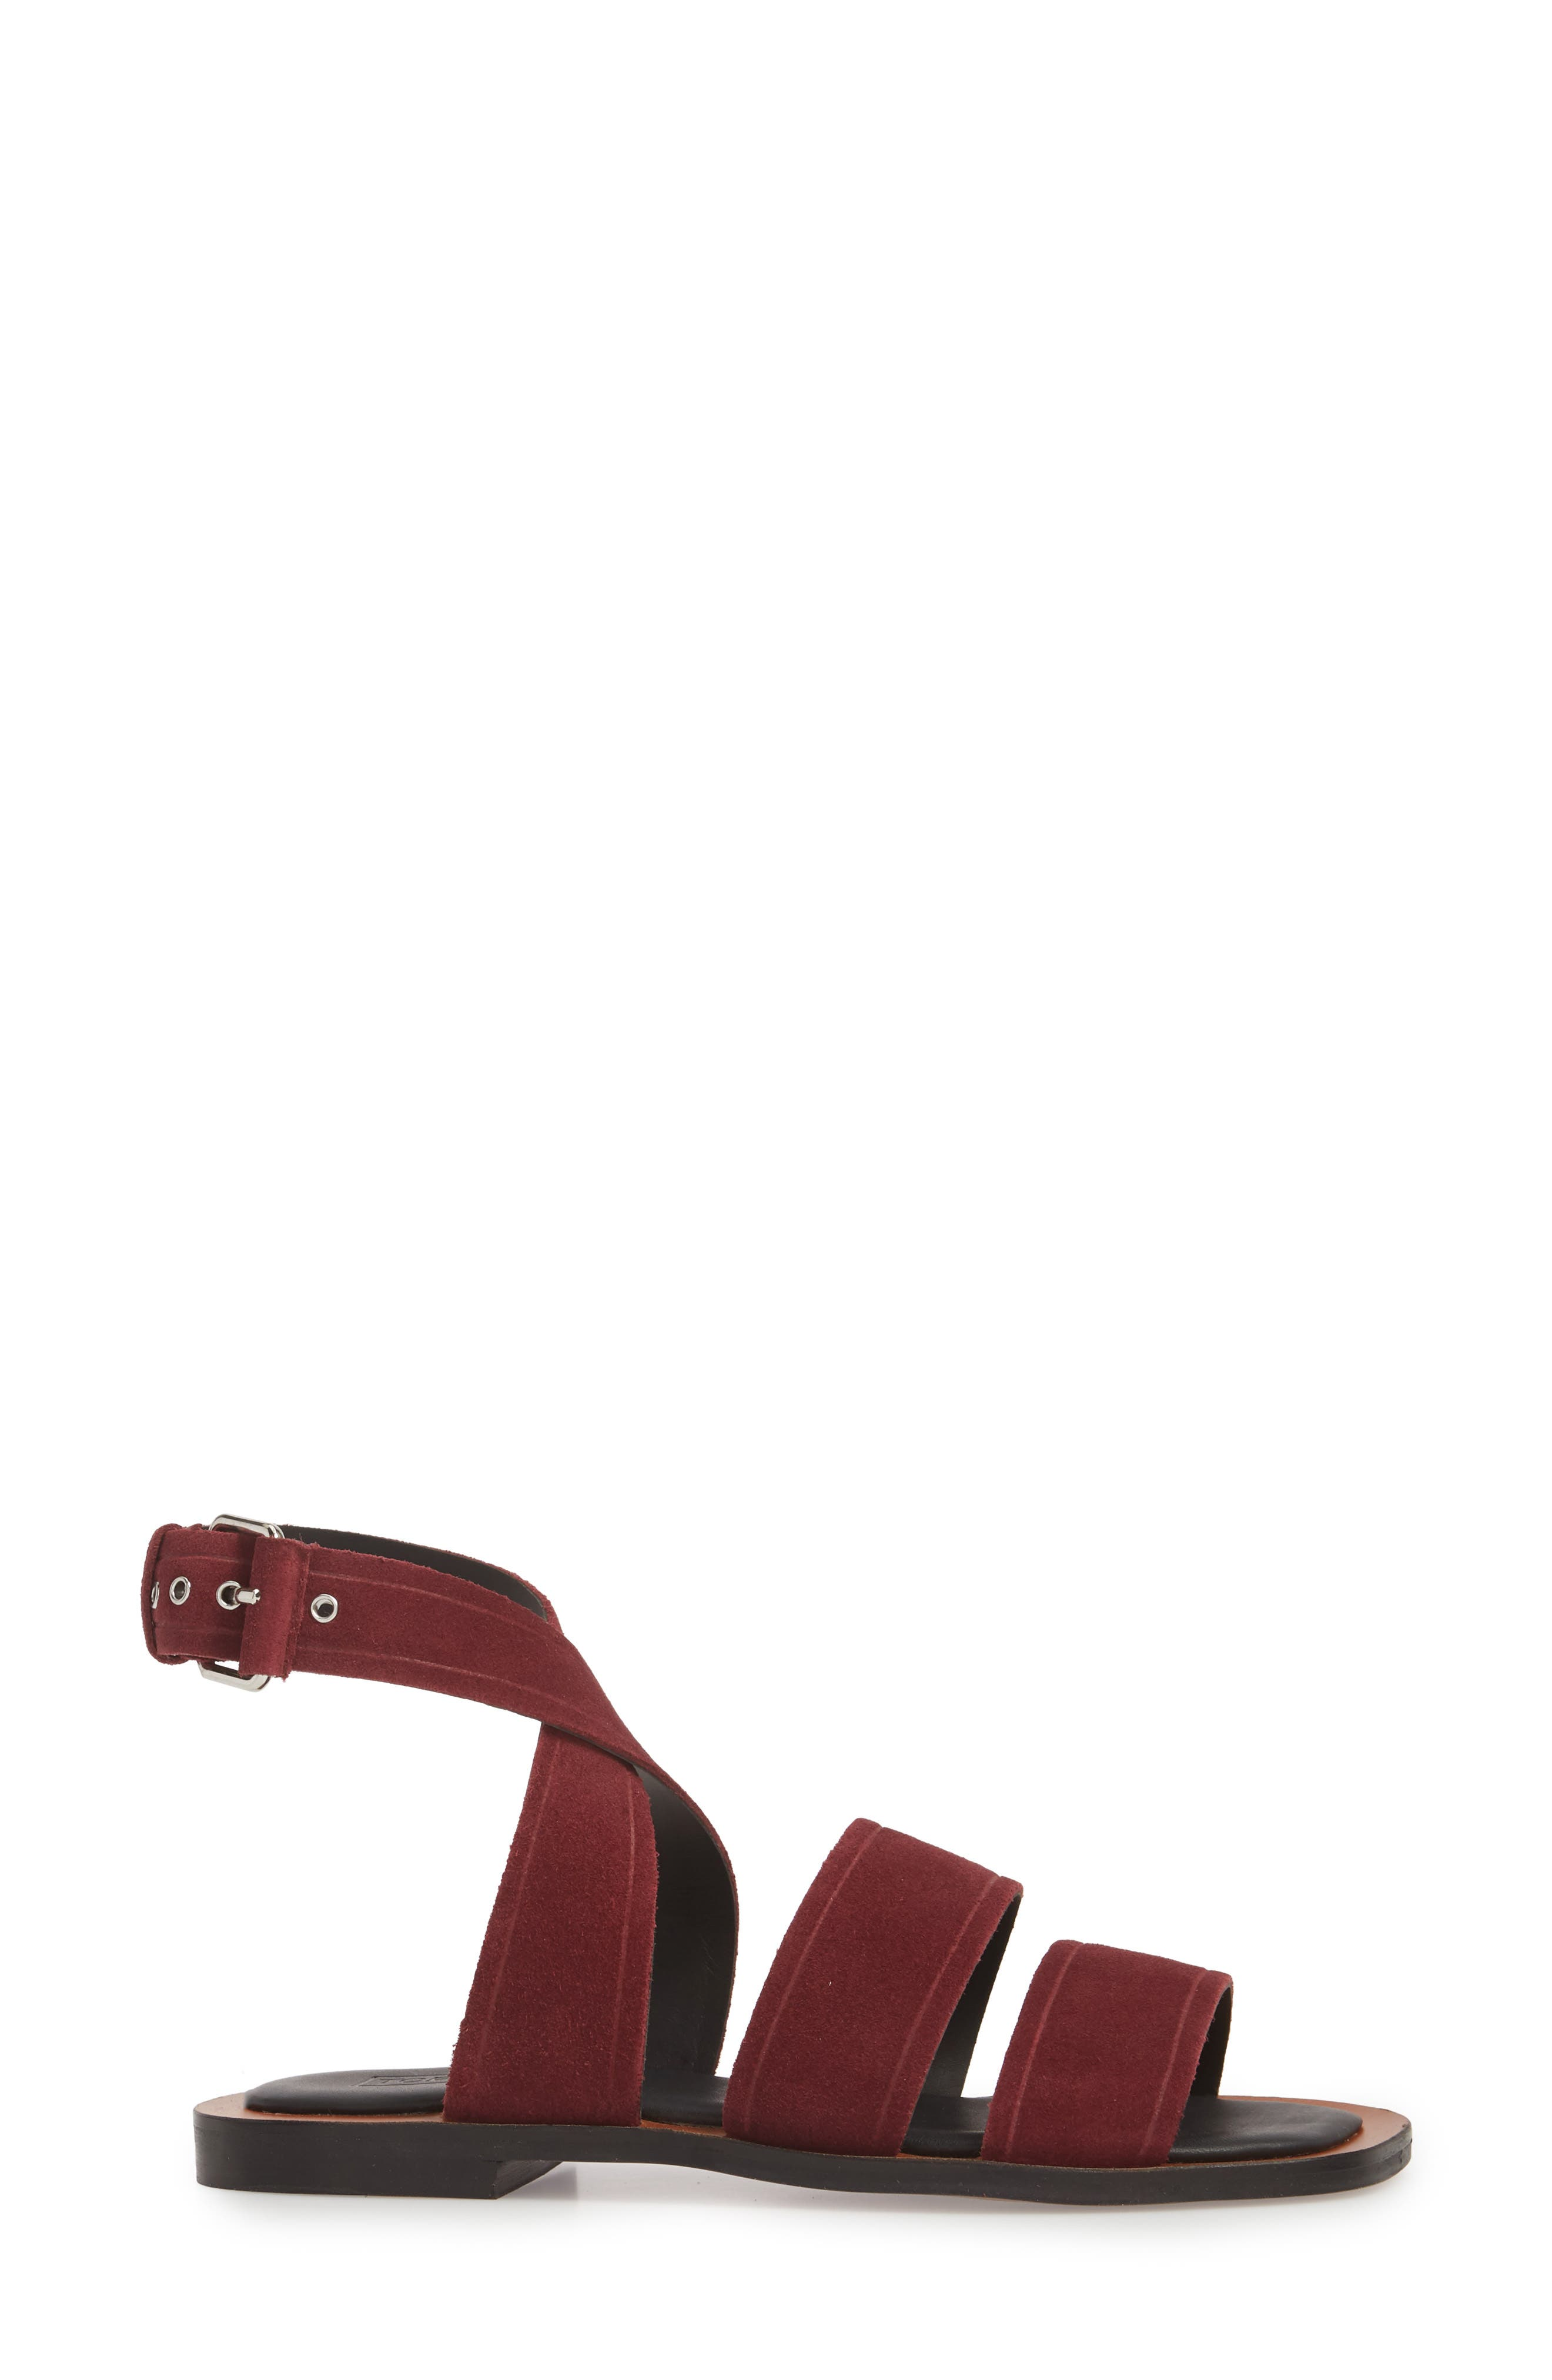 Fume Strappy Sandal,                             Alternate thumbnail 3, color,                             Burgundy Multi